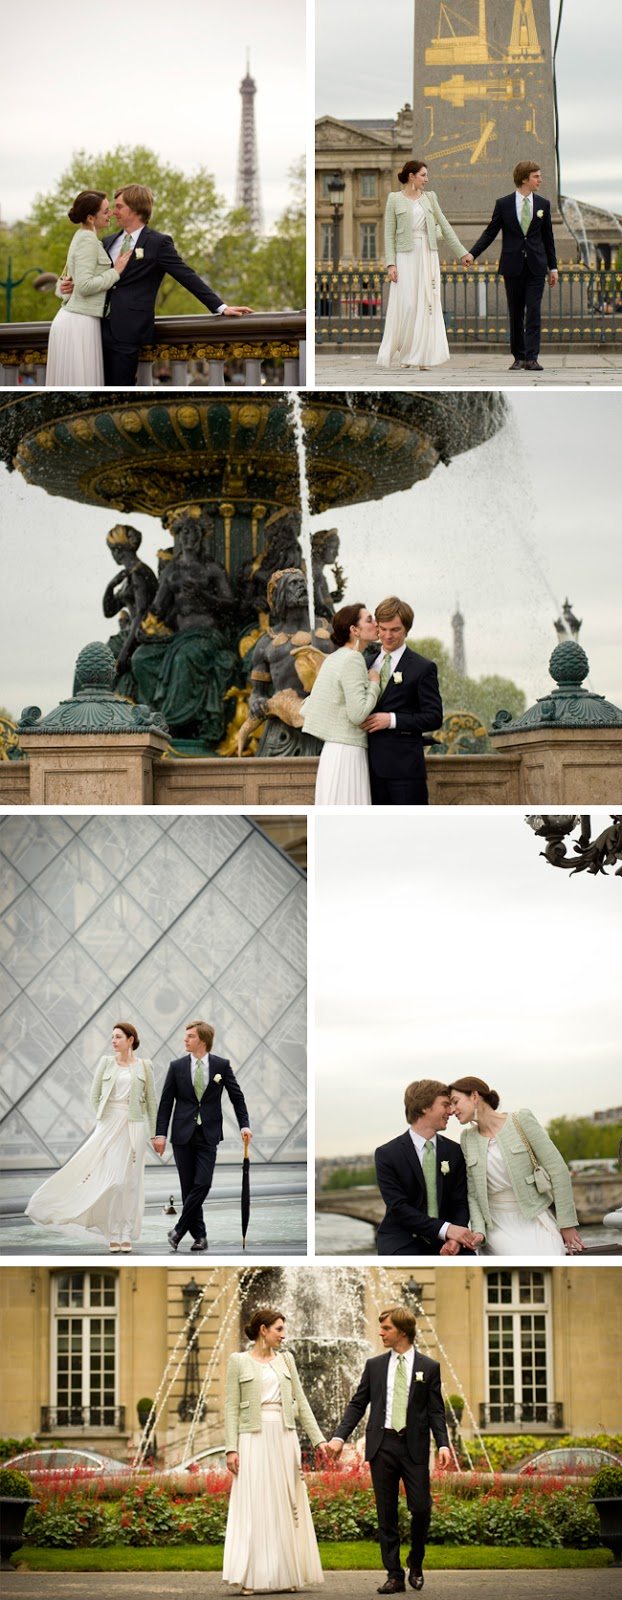 A Parisian honeymoon shoot by WeddingLight